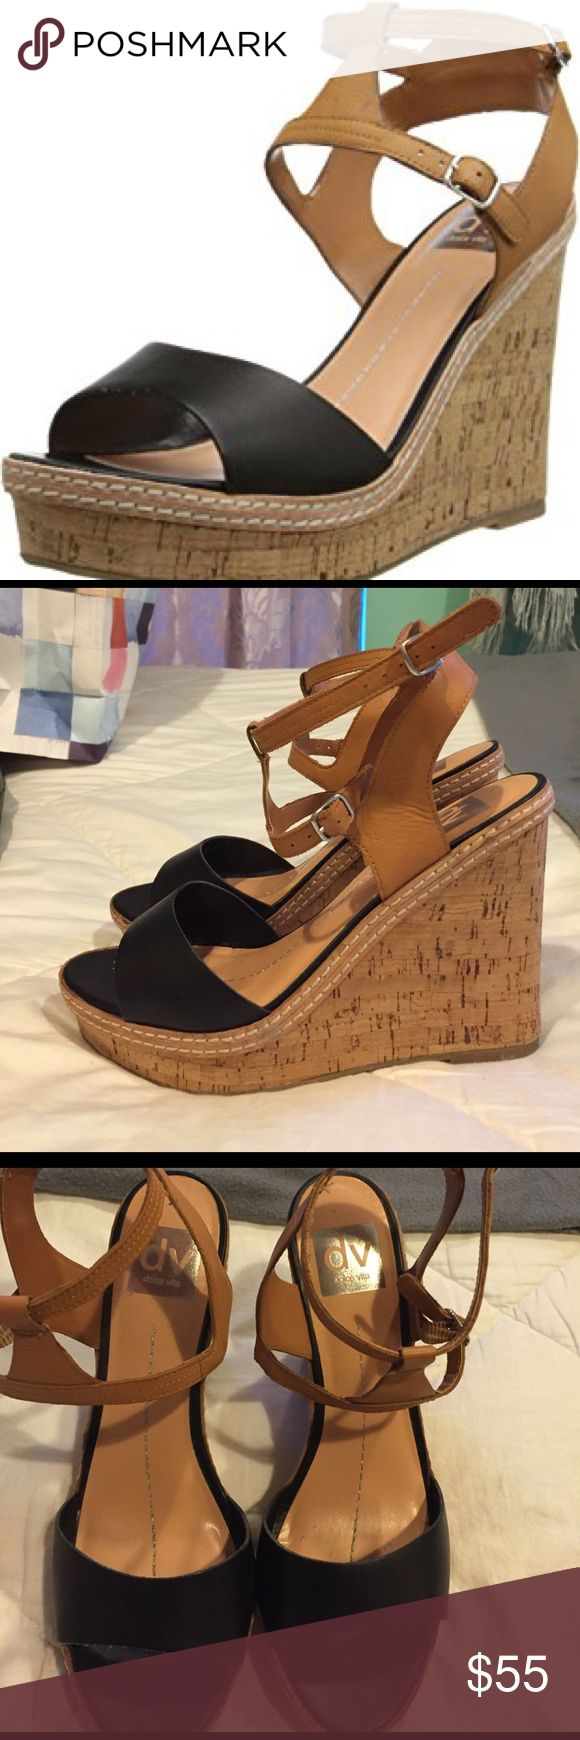 DV by Dolce Vita Women's Jesper Wedge size 9 Worn only once to a wedding. DV By Dolce Vita Jesper Wedge in Black and Tan. Very comfortable and matches all outfits. Perfect for spring. DV by Dolce Vita Shoes Wedges